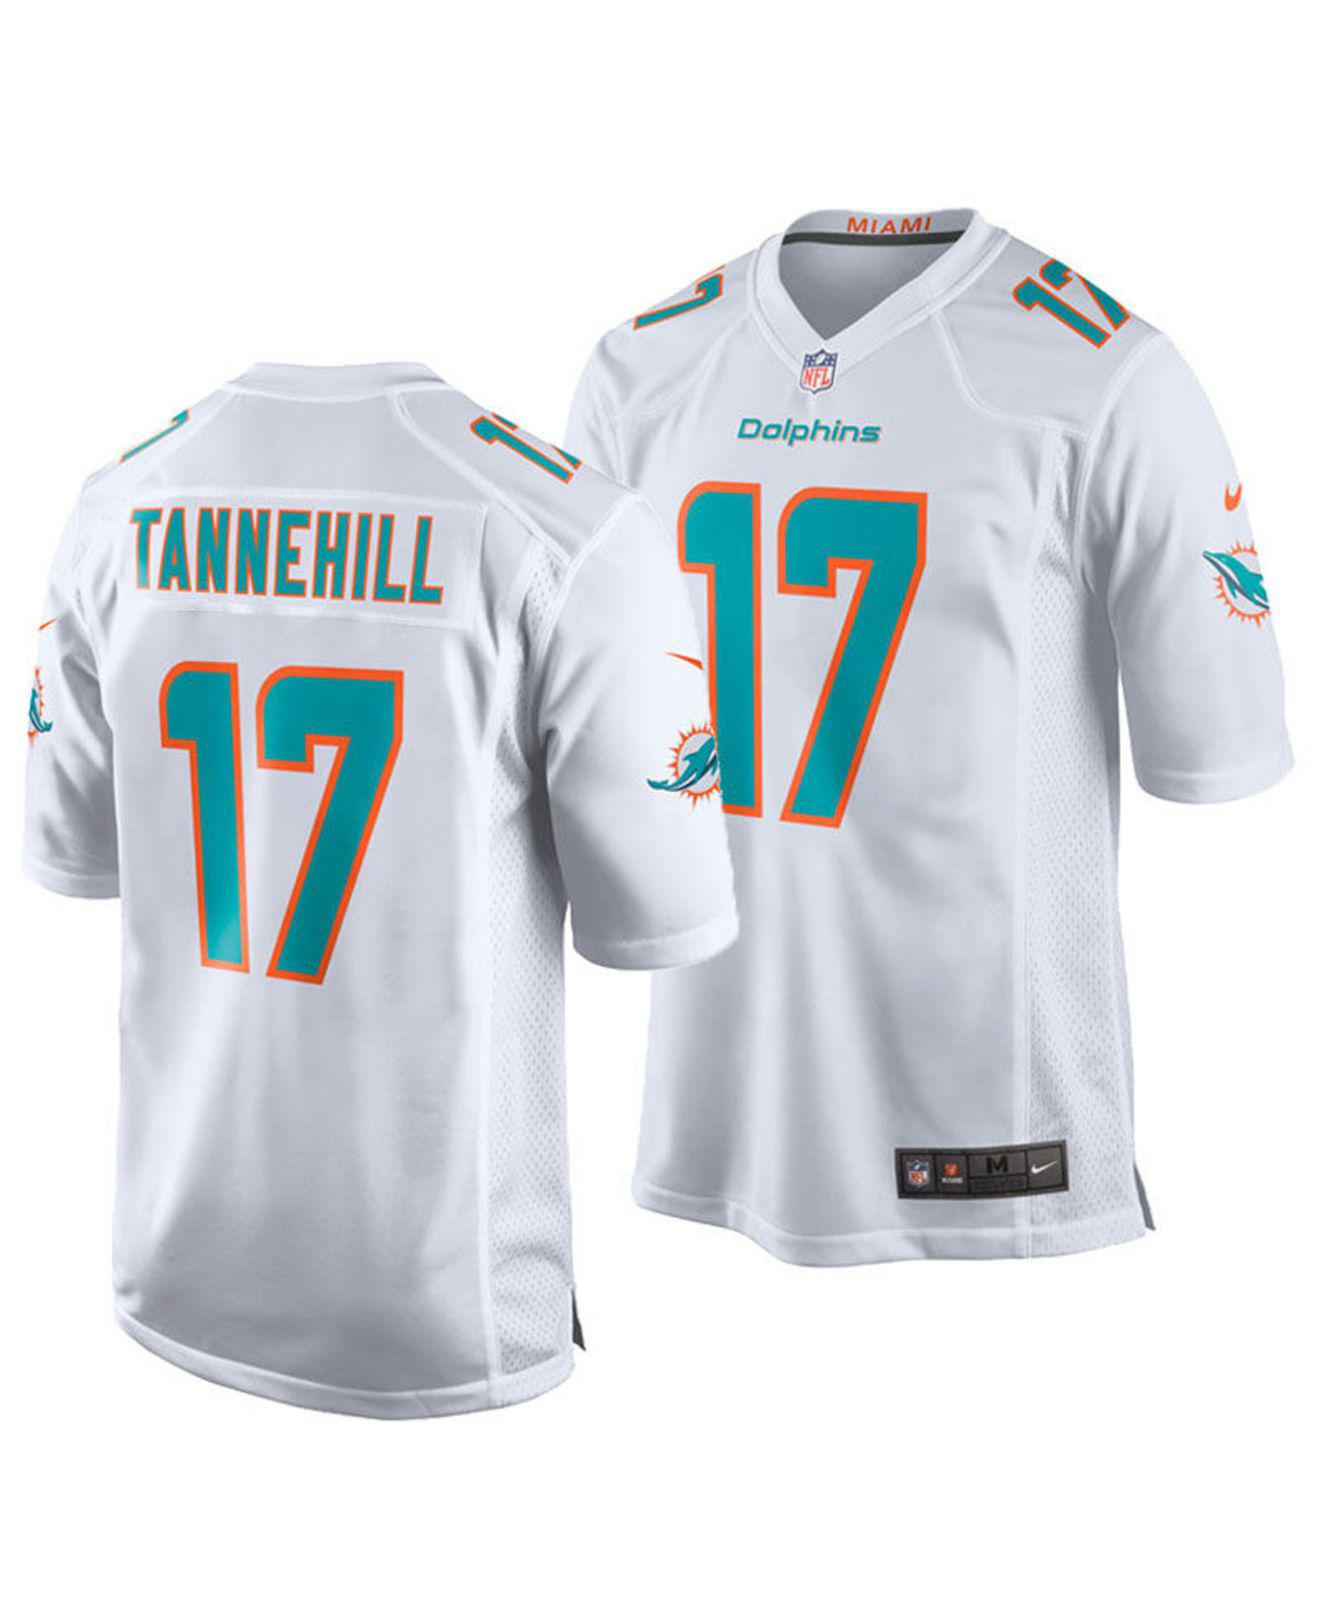 274ea03a Lyst - Nike Ryan Tannehill Miami Dolphins Game Jersey in White for Men